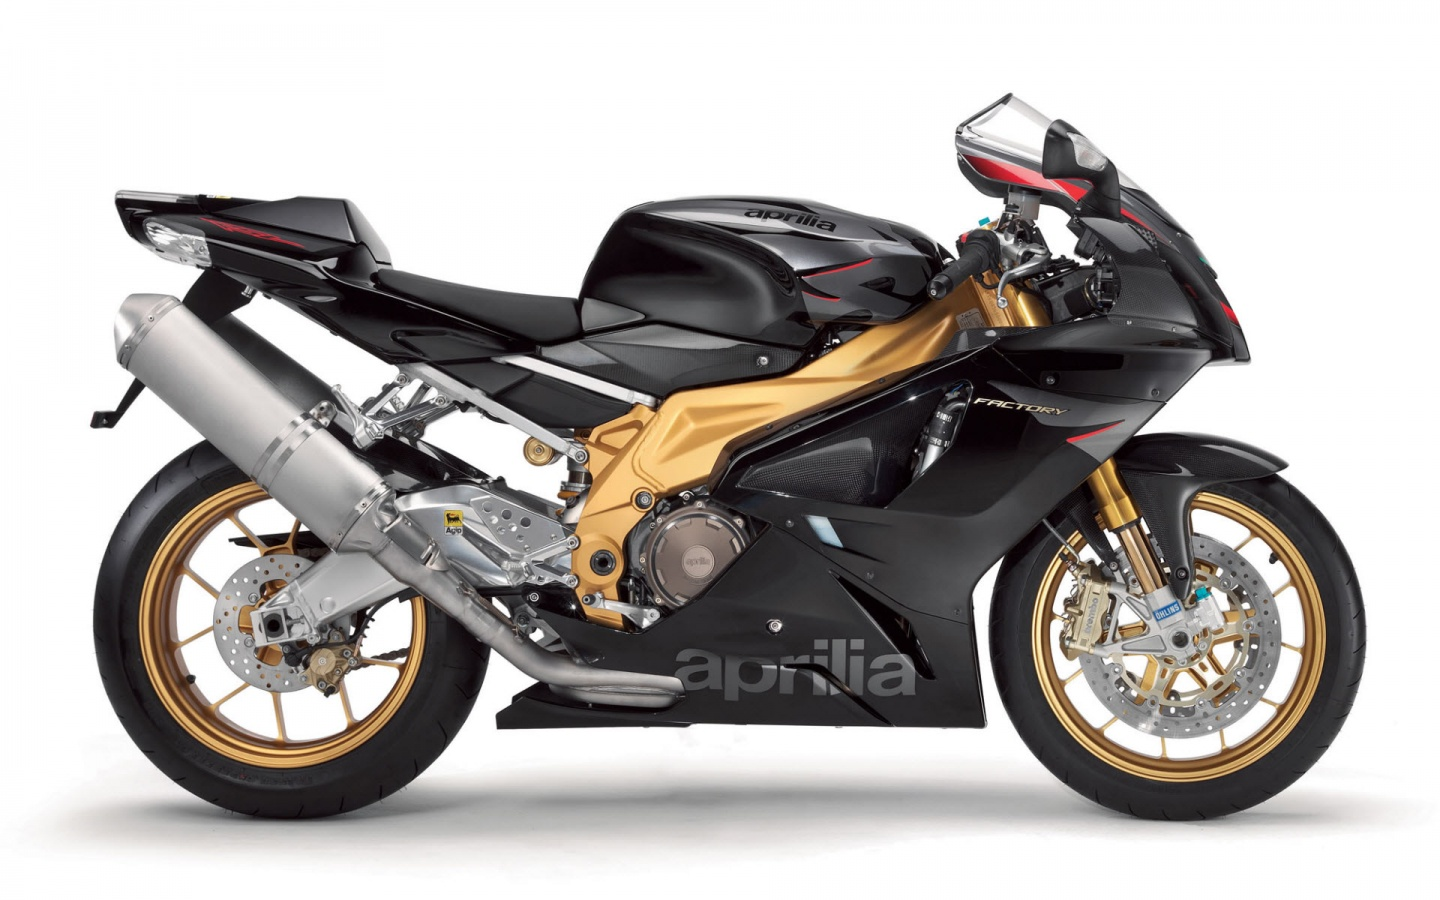 Aprilia Rsv Factory 4210343 1920x1200 All For Desktop HD Wallpapers Download free images and photos [musssic.tk]